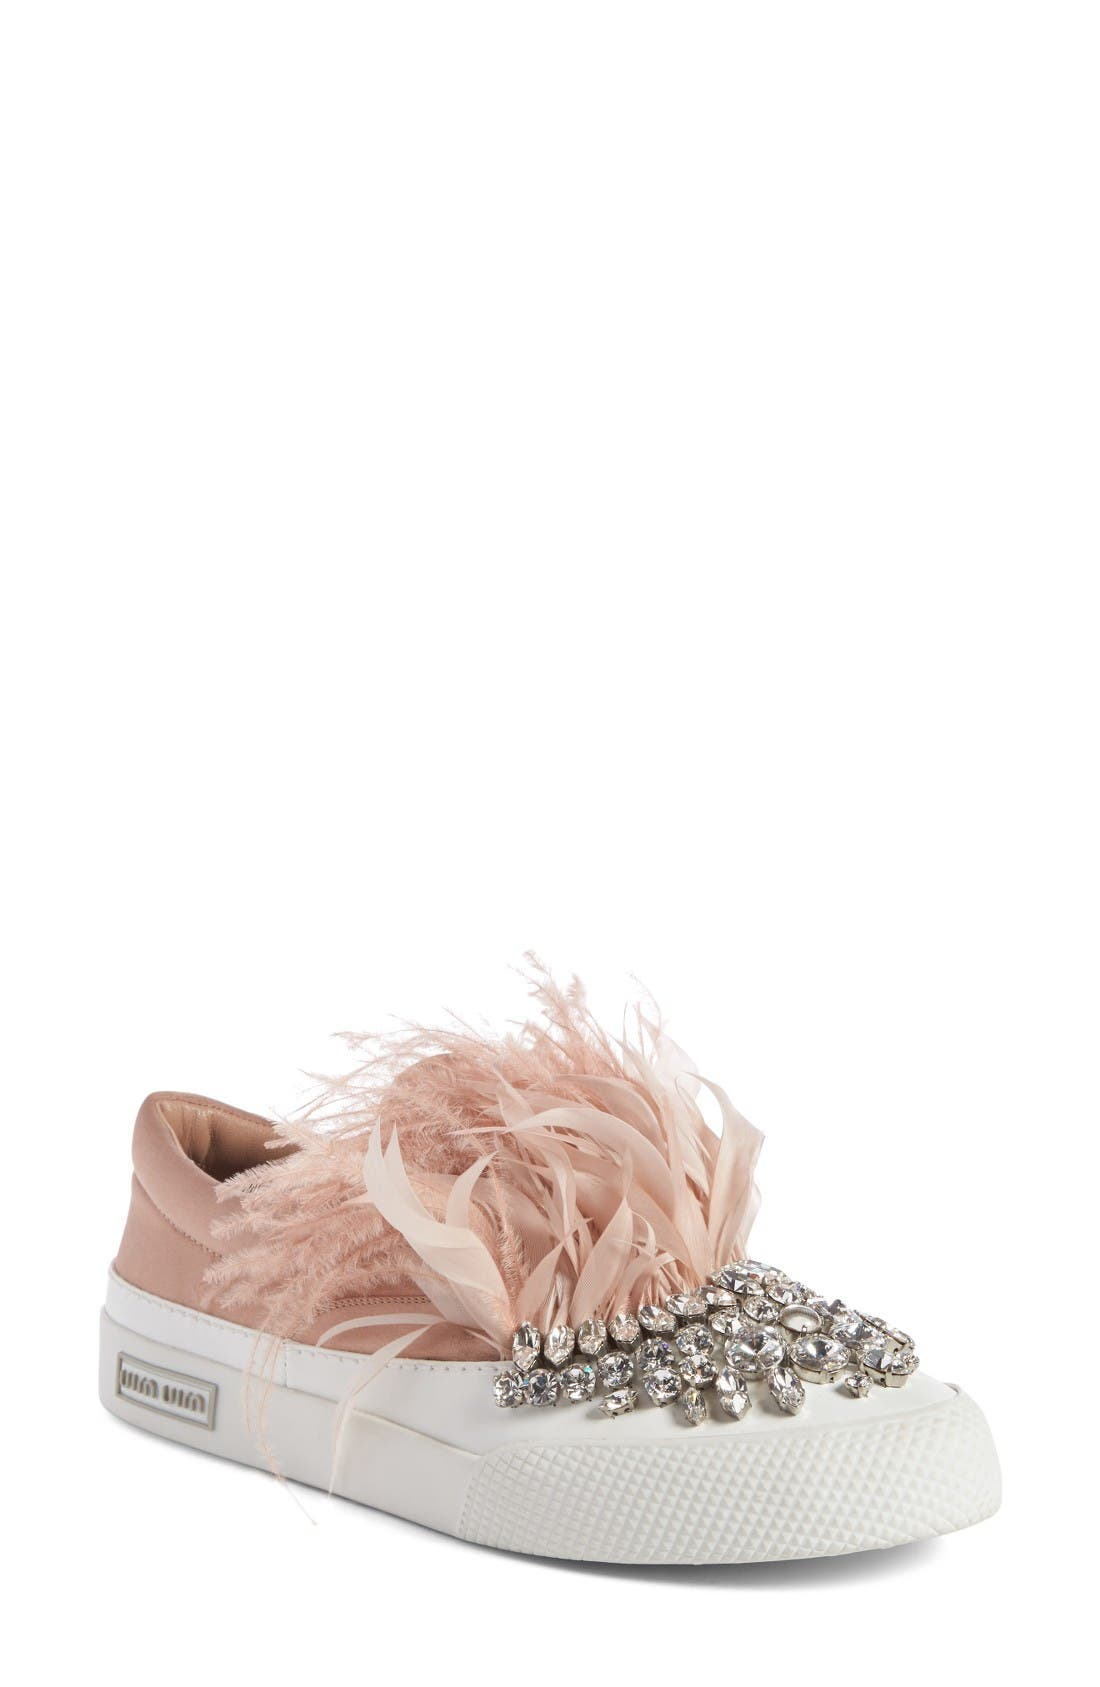 Alternate Image 1 Selected - Miu Miu Embellished Feather Slip-On Sneaker (Women)